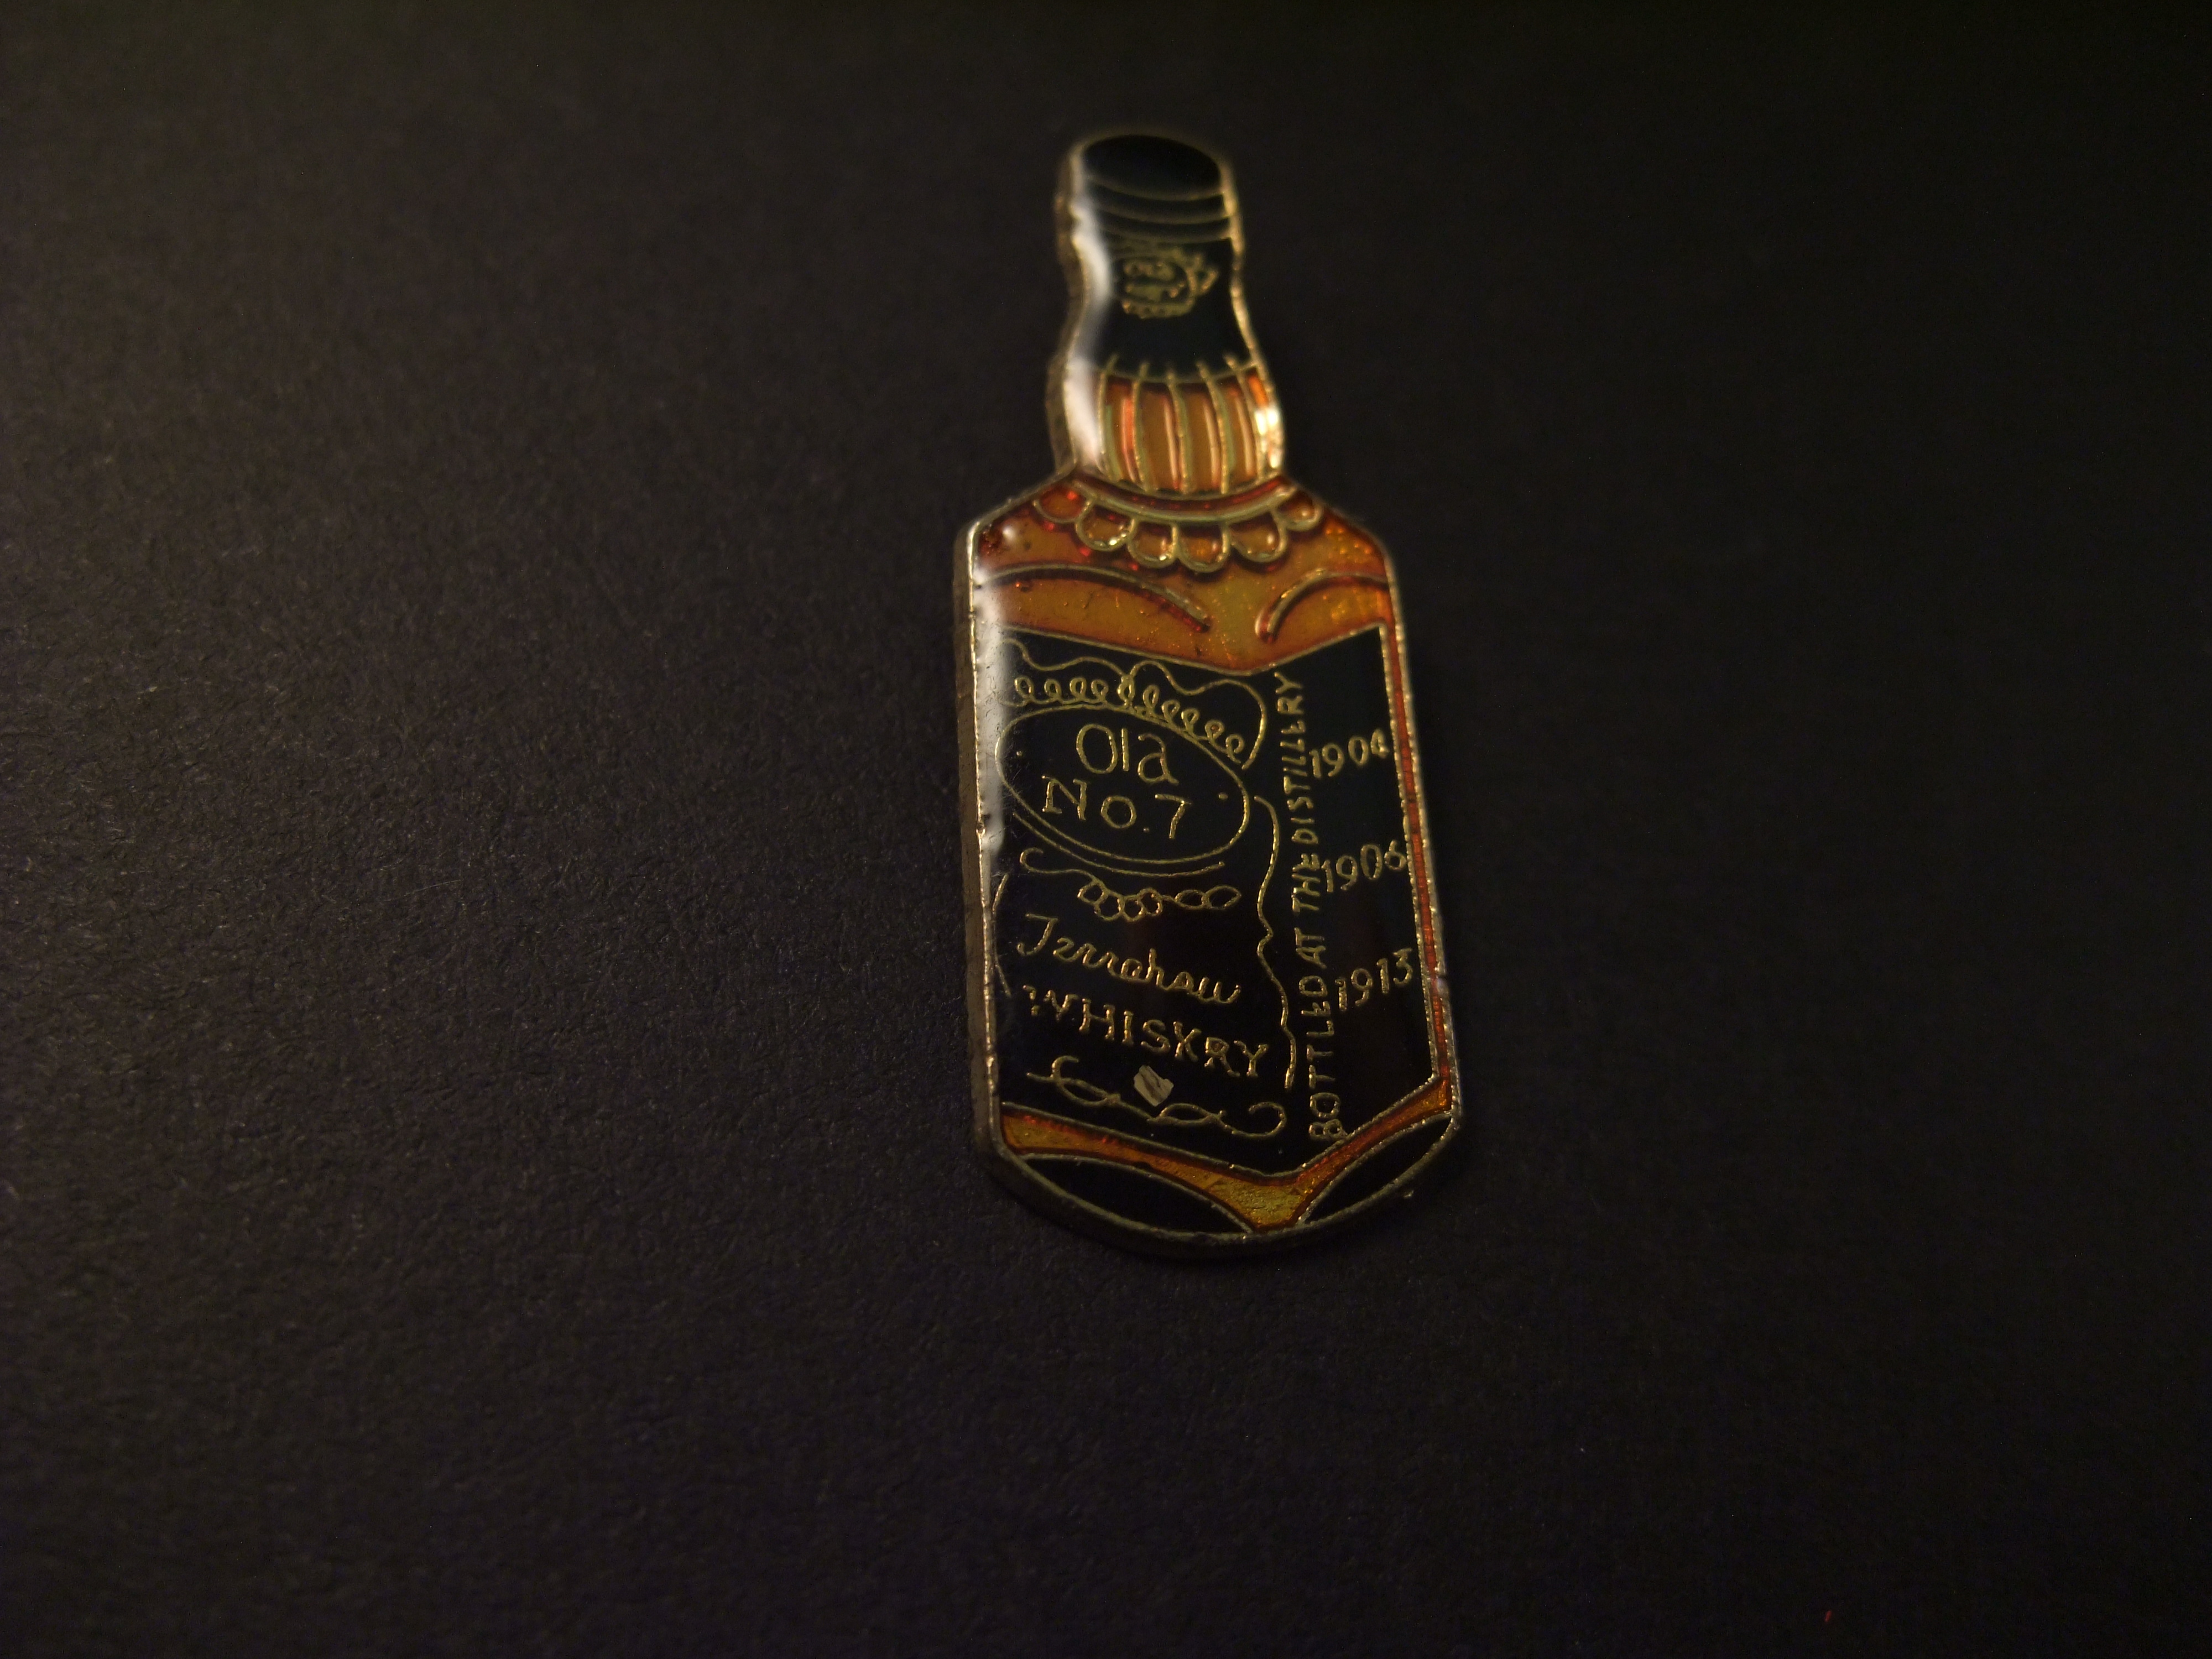 Old No. 7 brand Tennessee Whiskey ( stokerij van Jack Daniels )